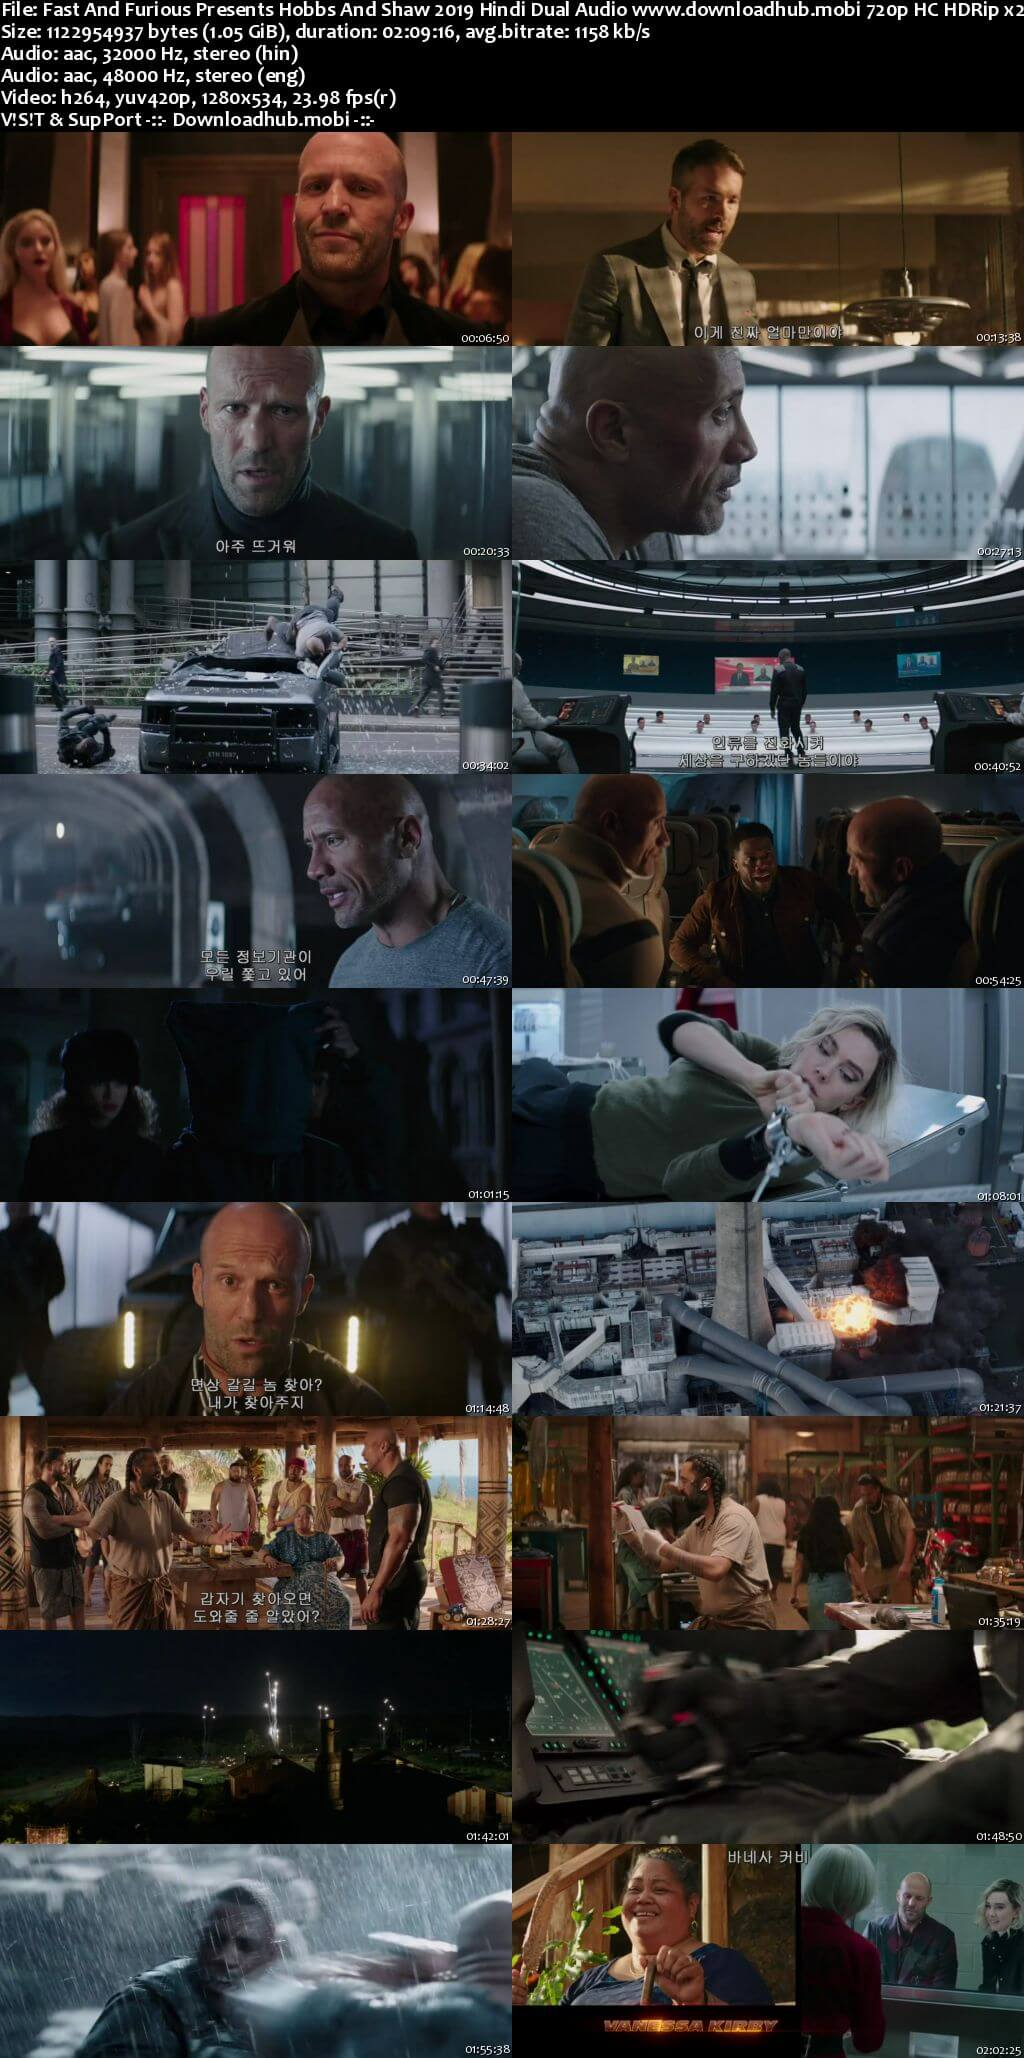 Fast And Furious Presents Hobbs And Shaw 2019 Hindi Dual Audio 720p HC HDRip x264